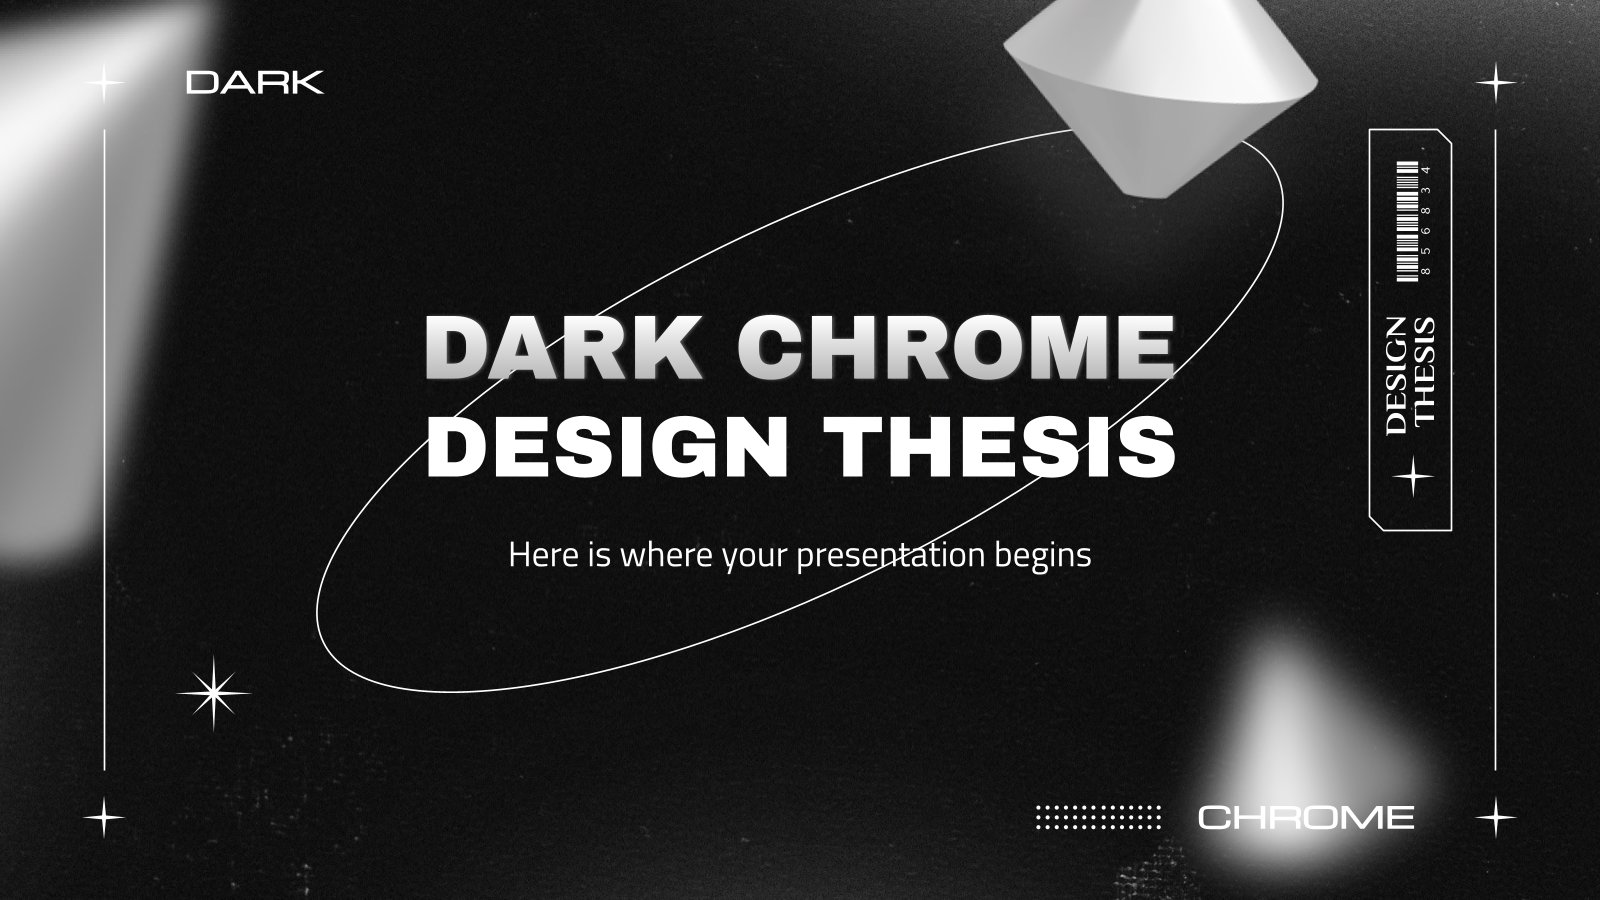 Dark Chrome Design Thesis presentation template